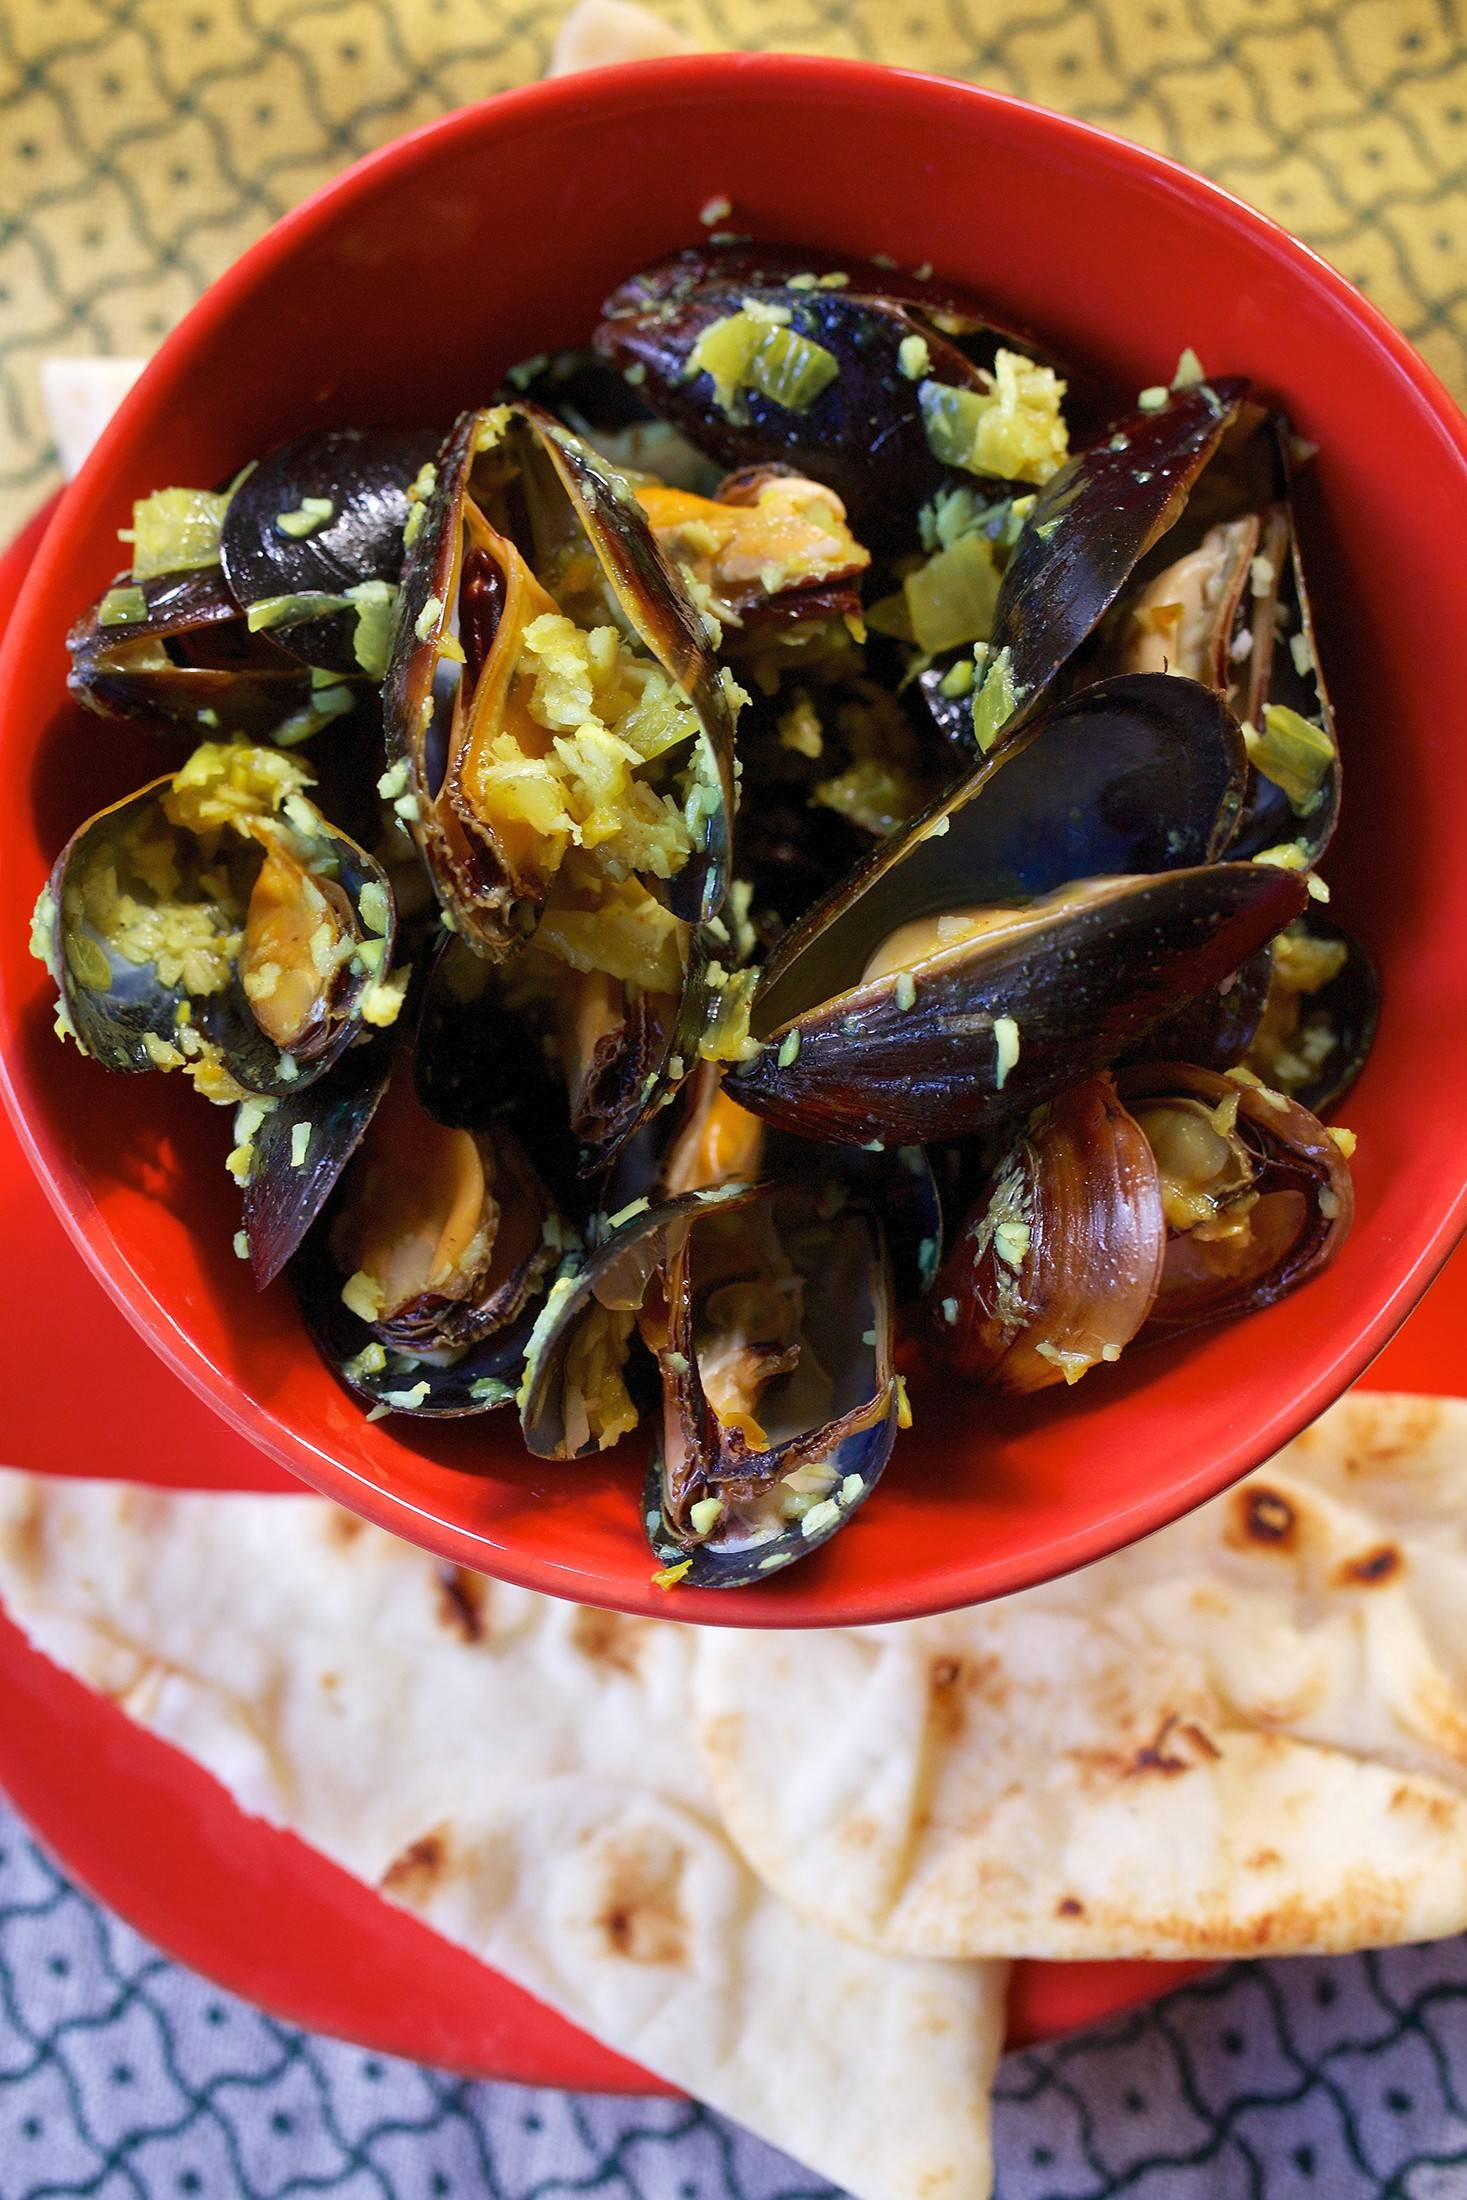 Goan-Style Mussels, inspired by Madhur Jaffrey, can be on the table in 35 minutes.